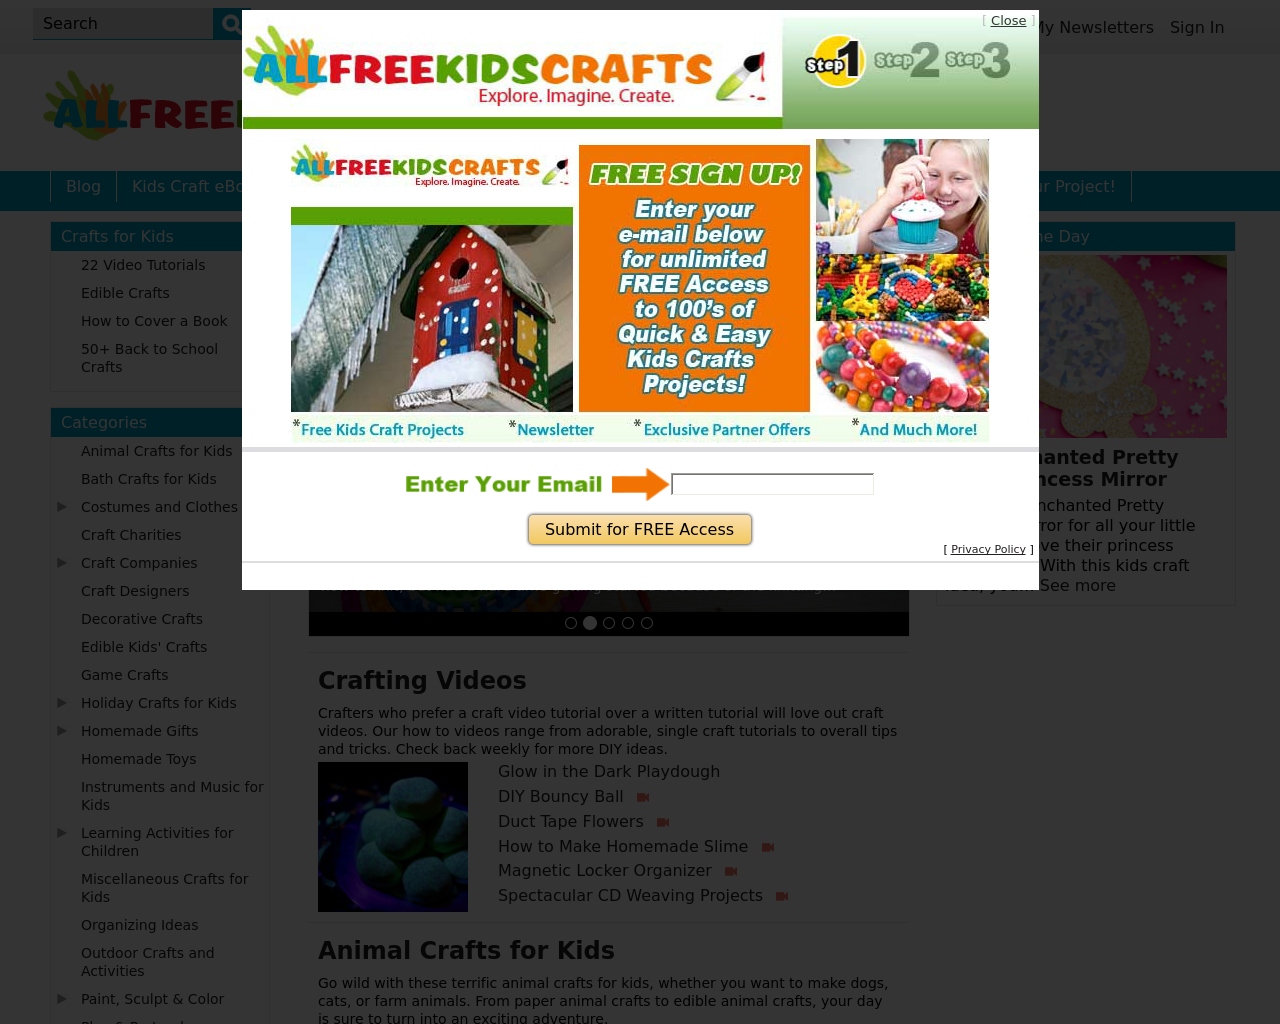 All-Free-Kids-Crafts-Advertising-Reviews-Pricing